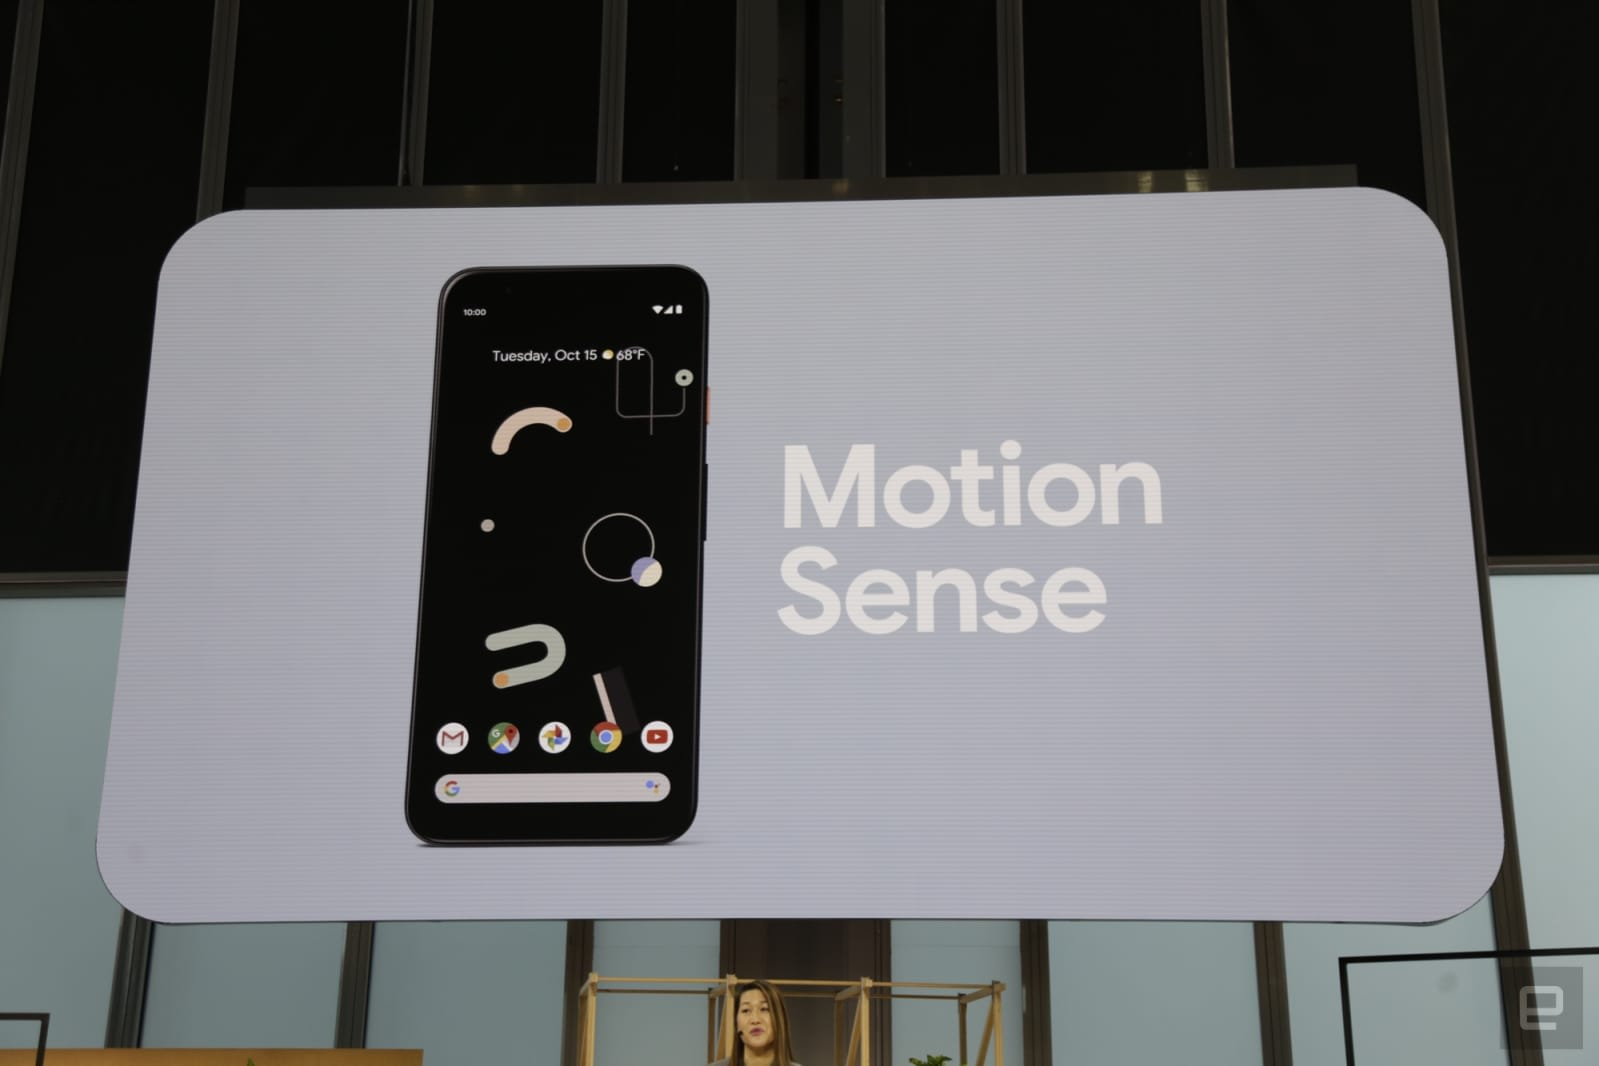 Google shows Motion Sense gestures in action on the Pixel 4